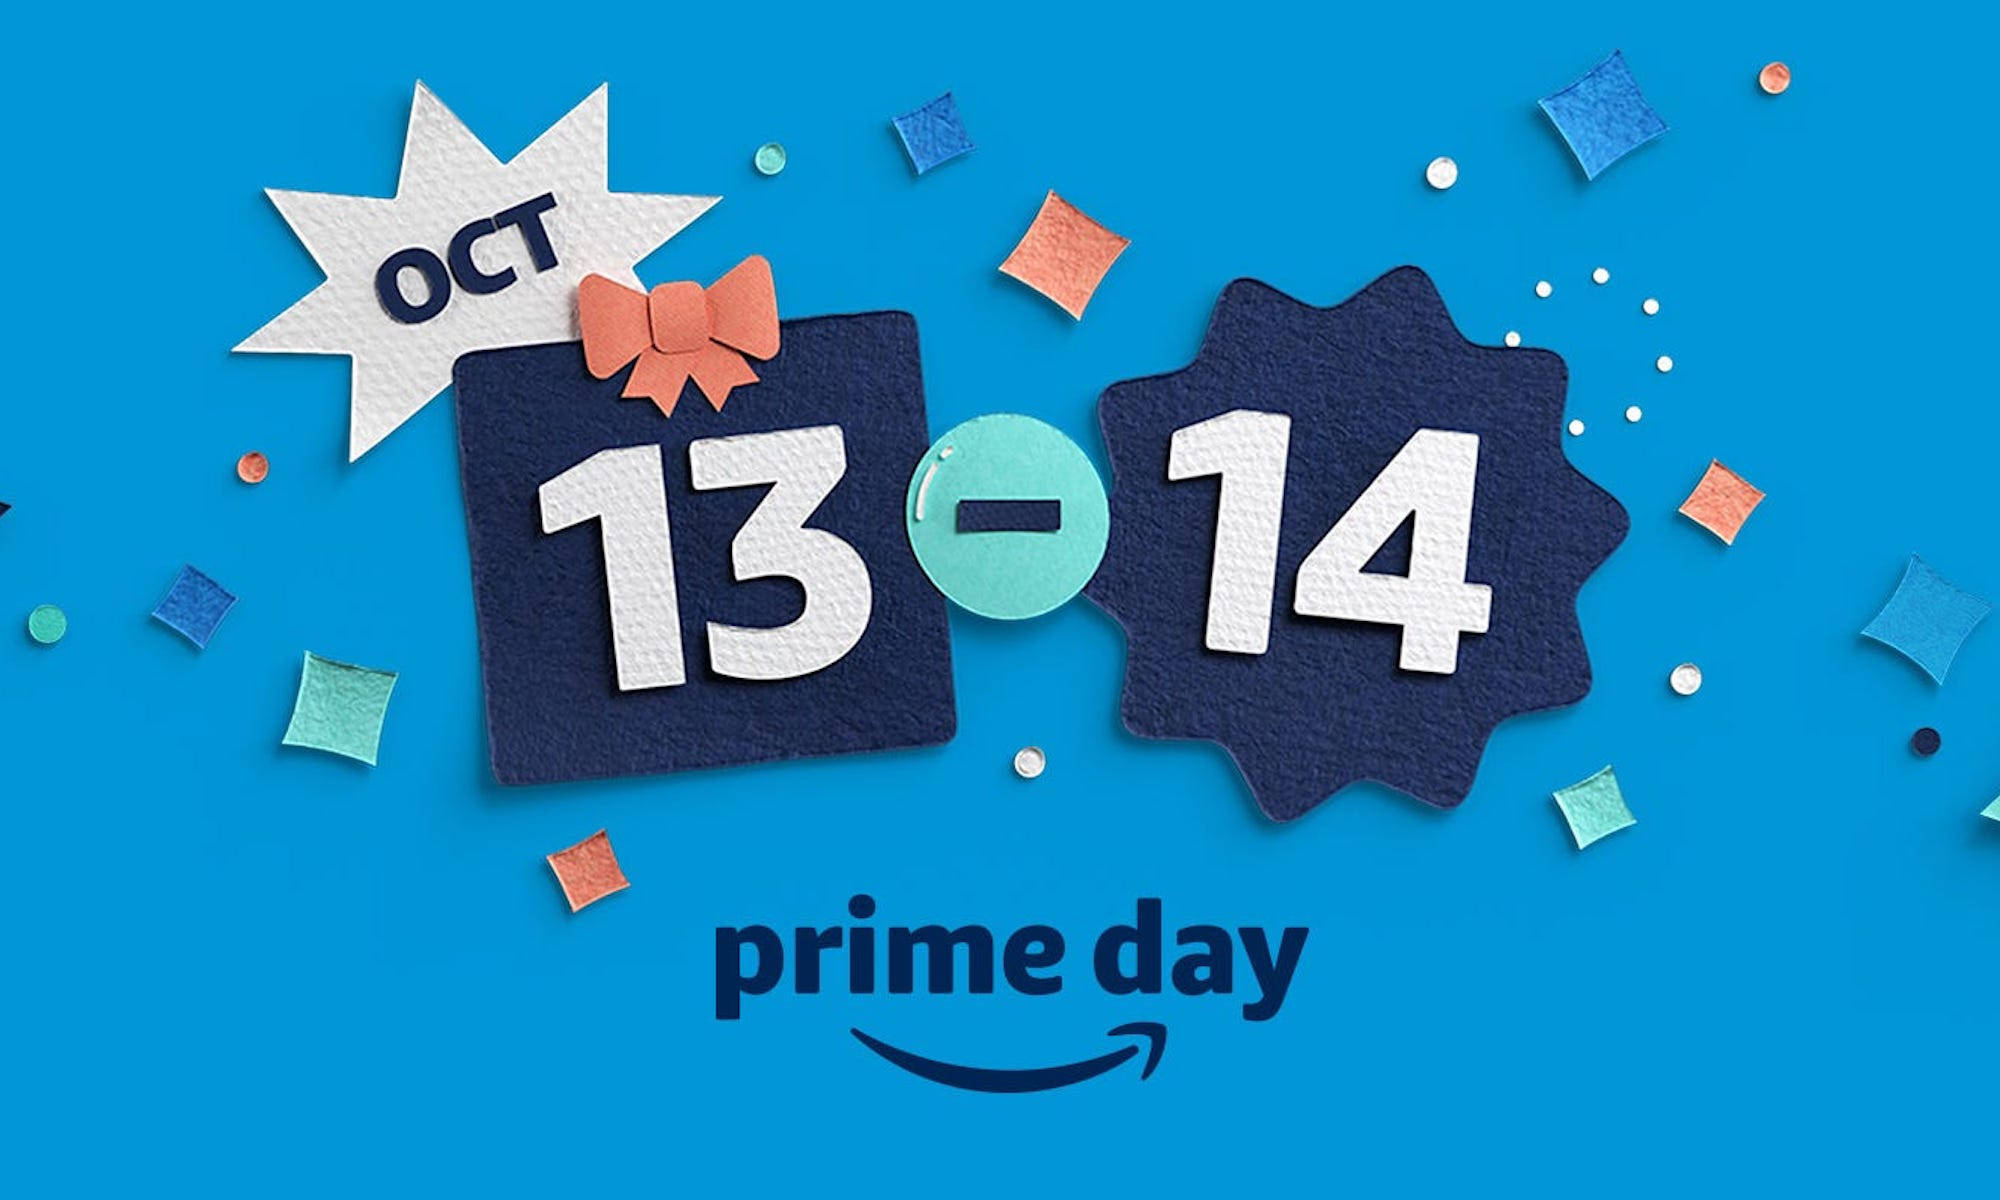 Best Prime Day deals 2020: Amazon Echo, DJI, Samsung Galaxy Buds, and more